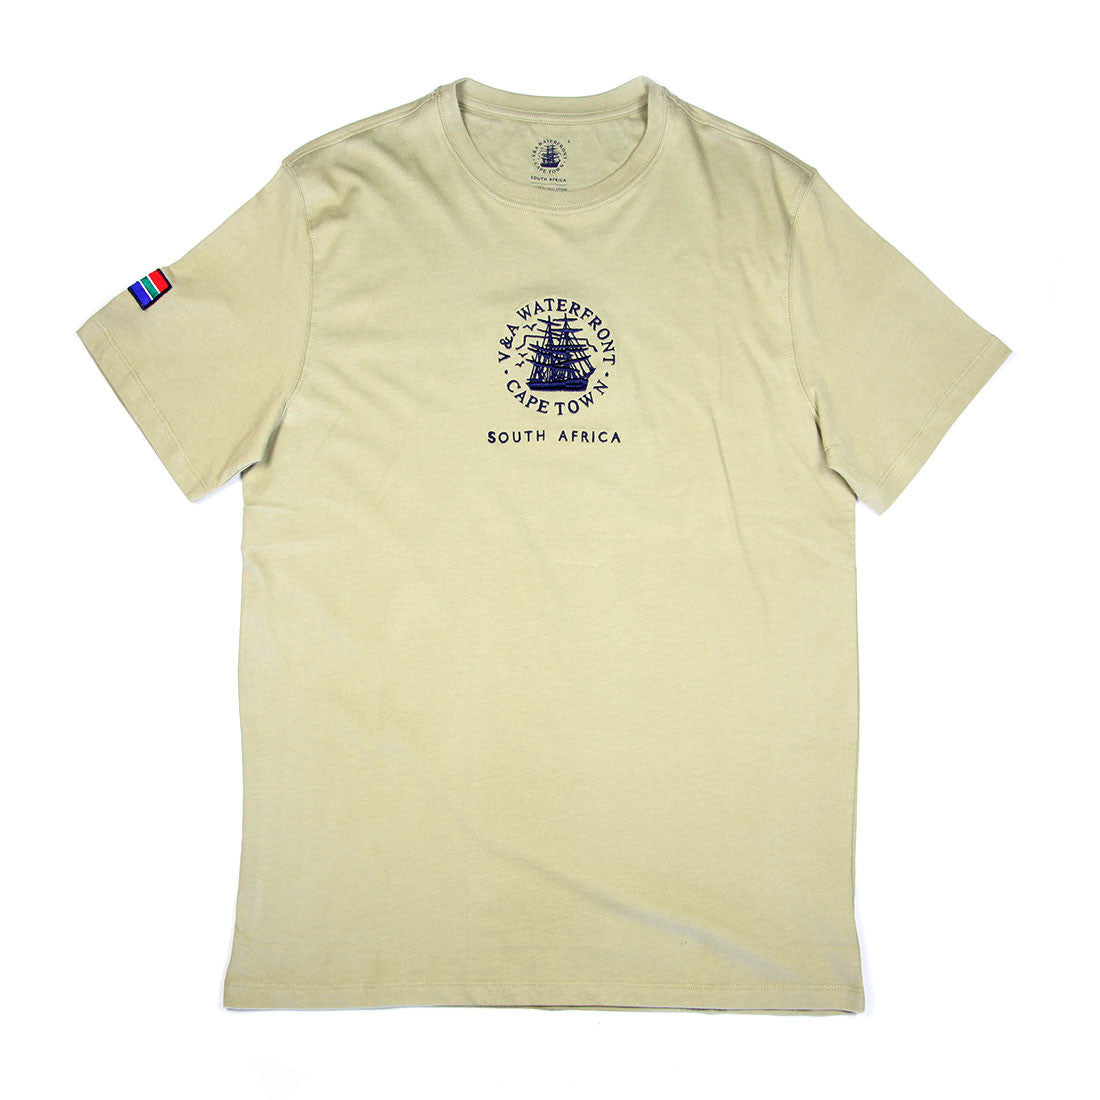 Mens Short Sleeve T-shirt Khaki